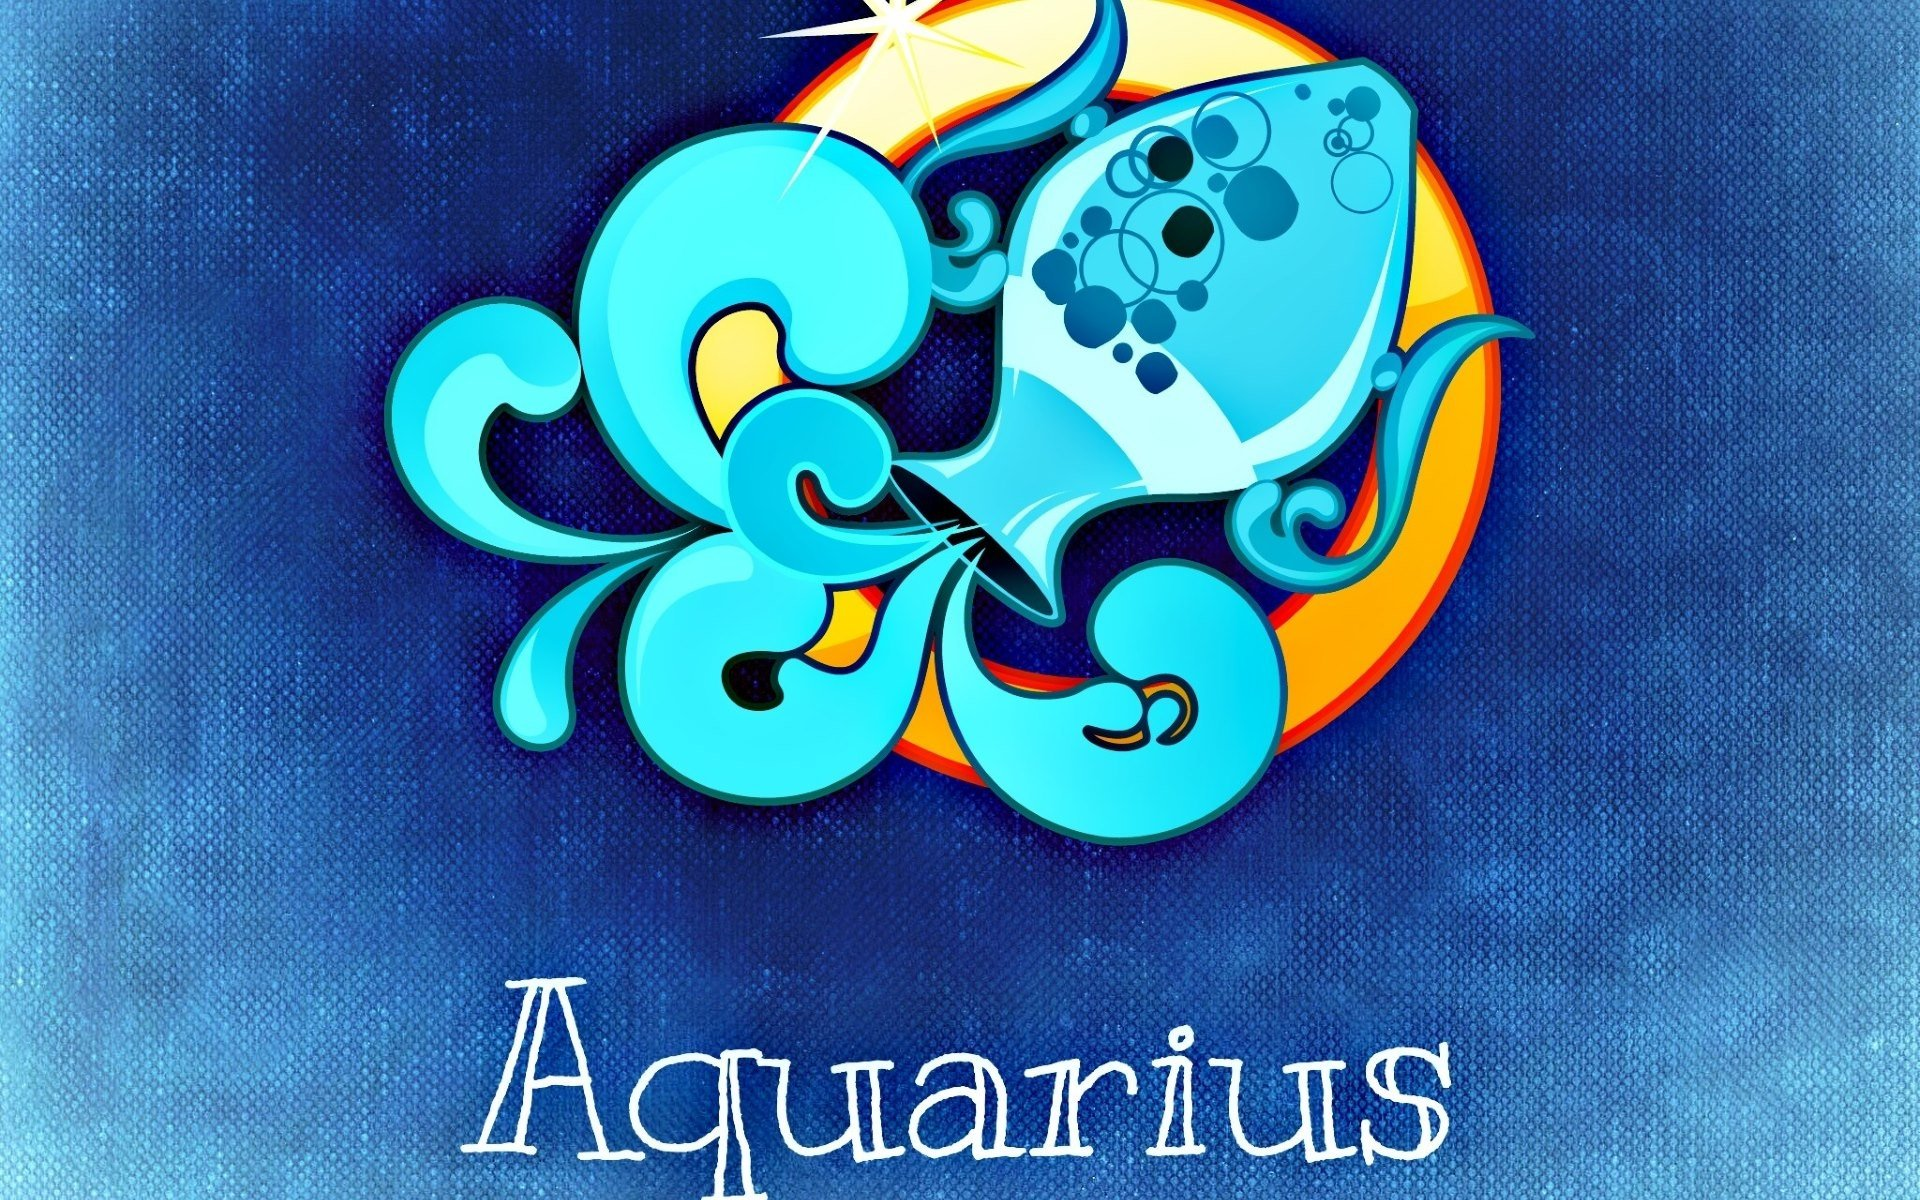 horoscope aquarius full hd wallpaper and background